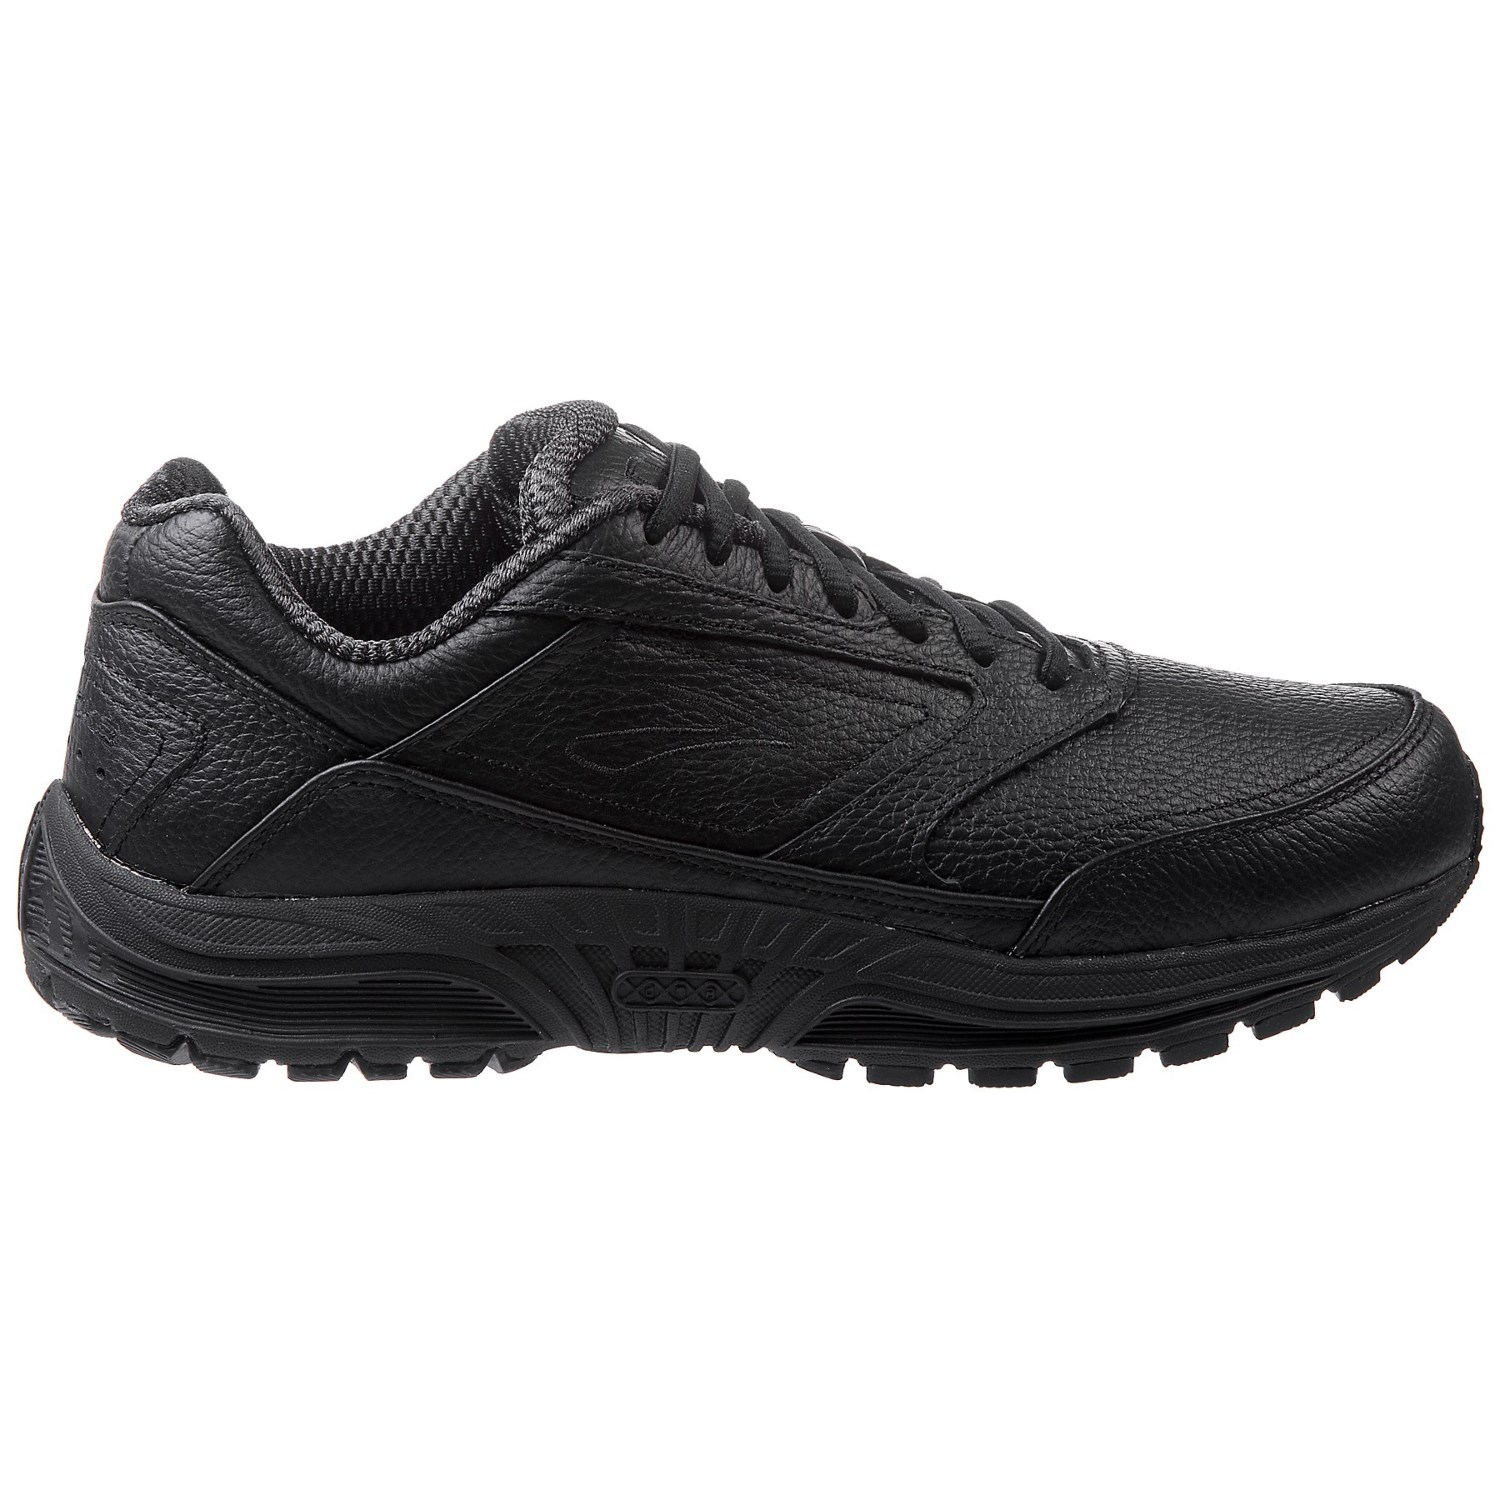 Brooks Womens Shoes On Clearance